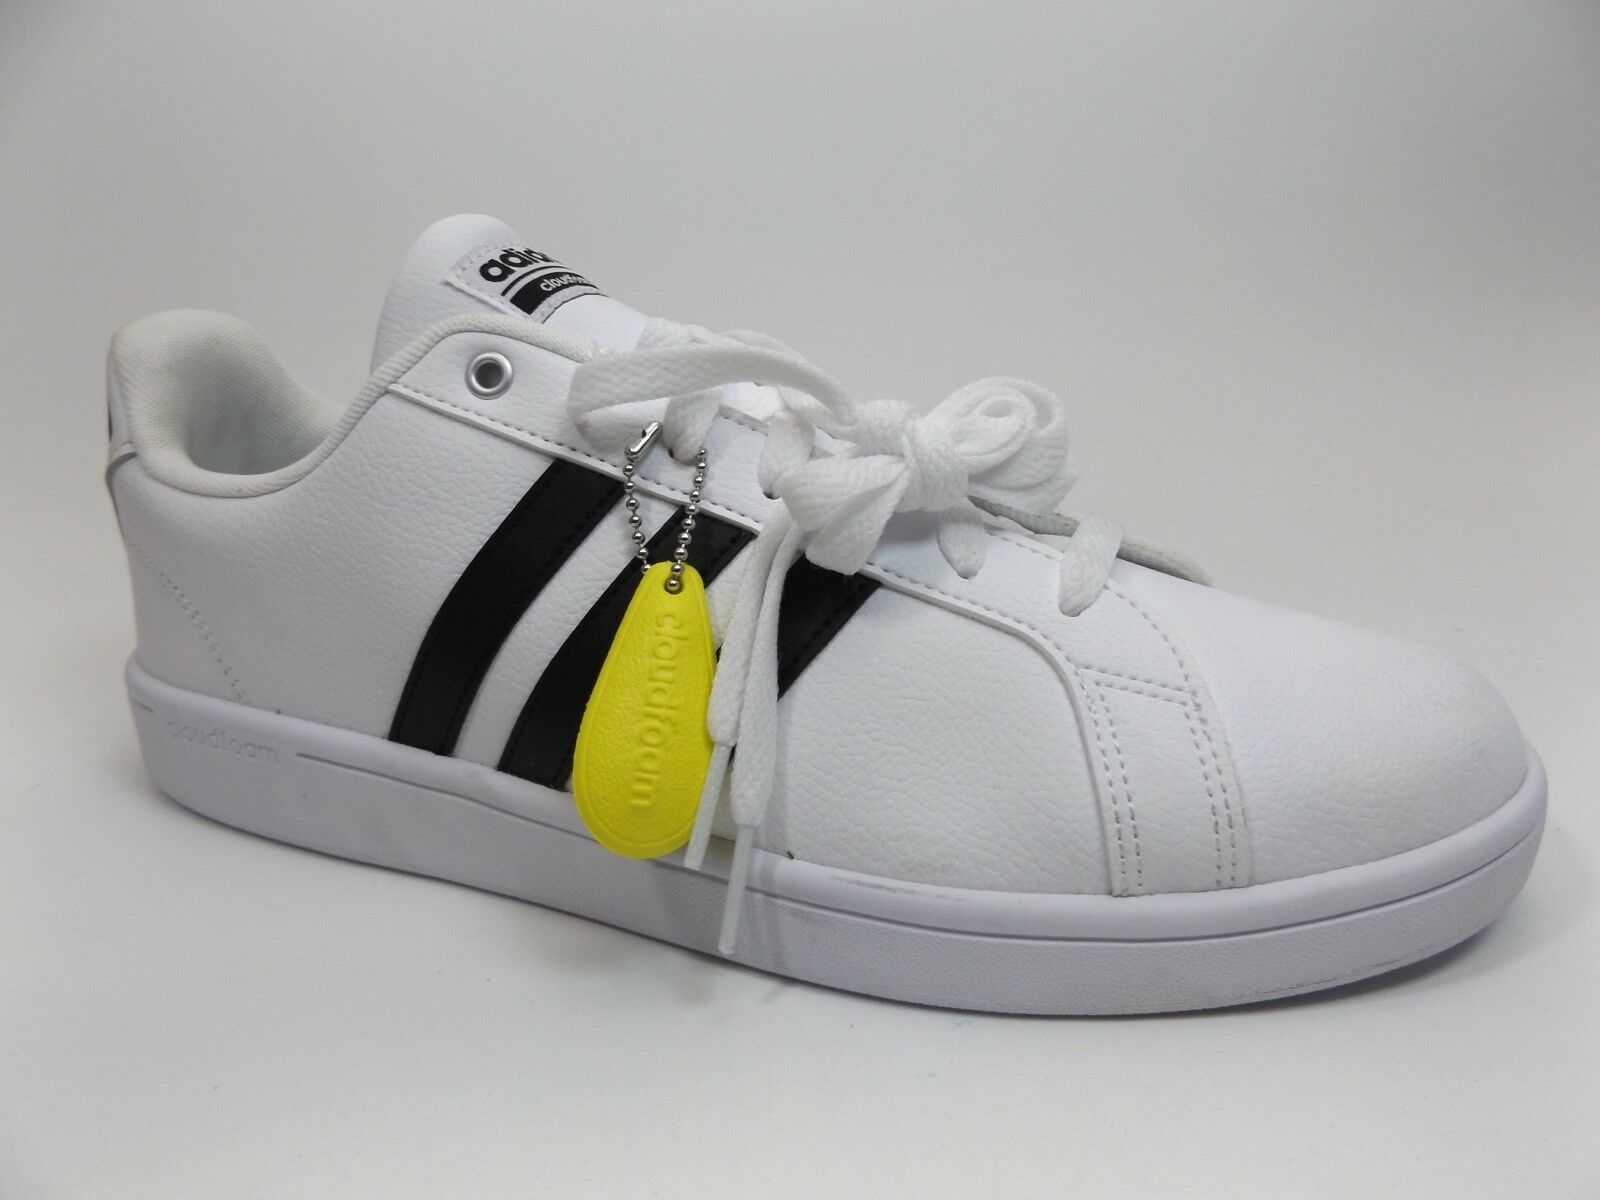 8e91150f4 Men Adidas Cloudfoam Advantage Fashion Sneaker SZ 11.5 M White NEW DISPLAY  D9461